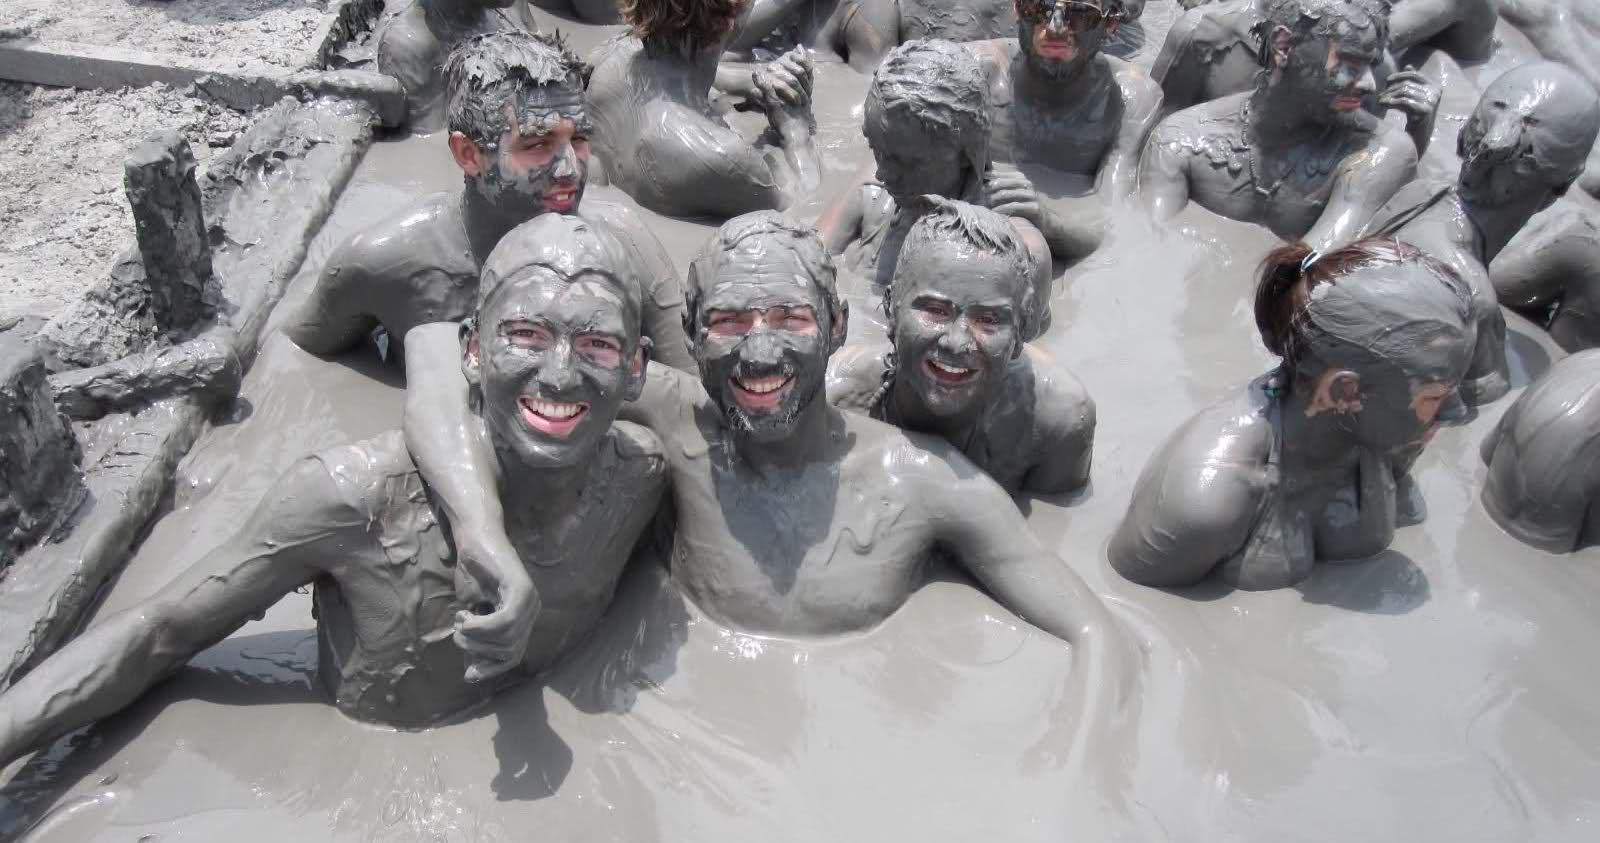 Mud bath in Turkey